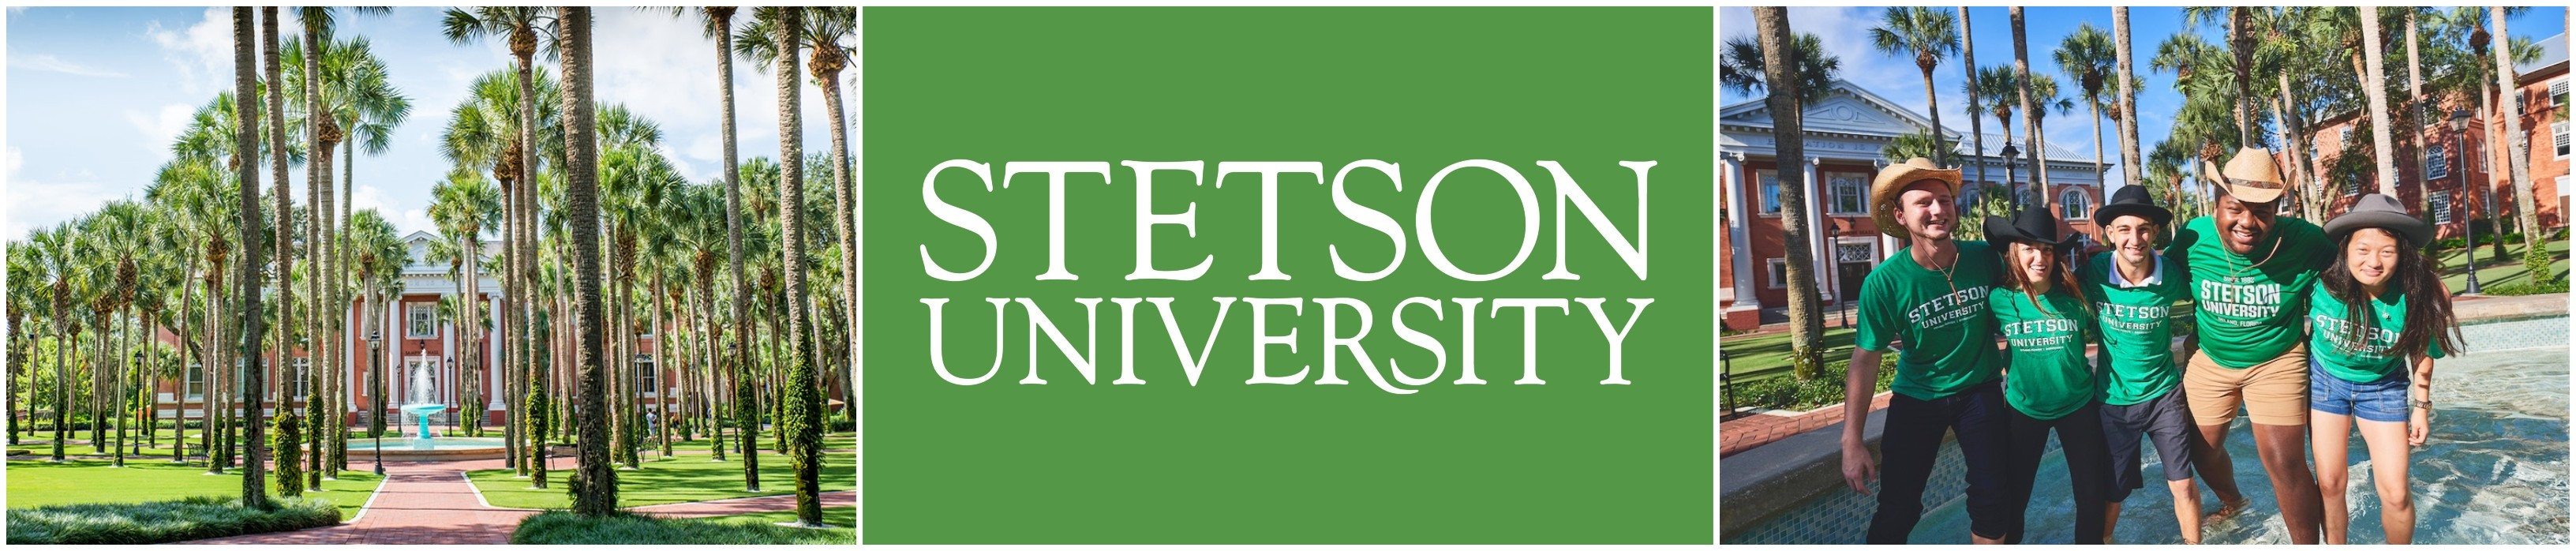 Stetson University | LinkedIn